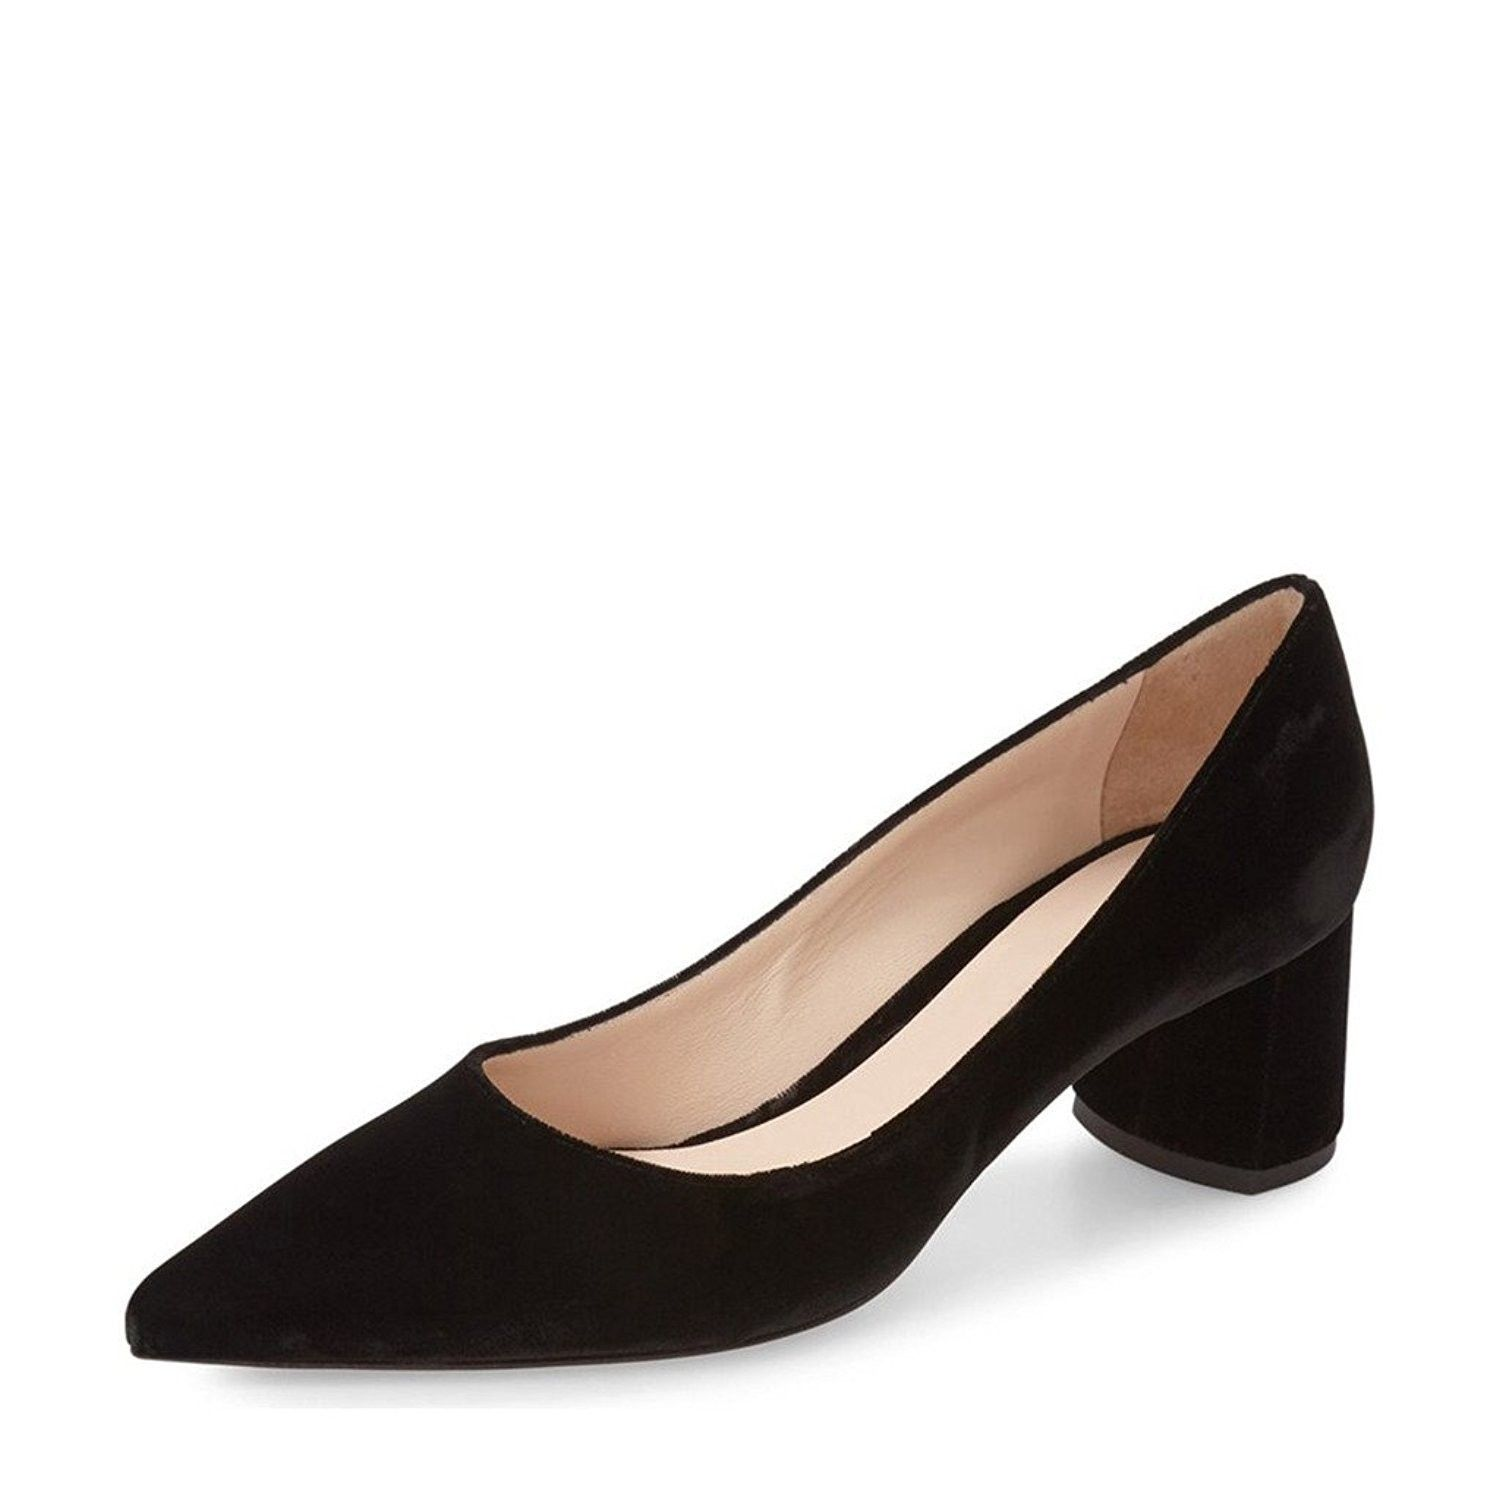 Women Suede Low Heel Pumps Classic Pointy Toe Slip On Formal Block Shoes Black C612o0b59o5 Black Shoes Women Pointy Shoes Womens Fashion Shoes